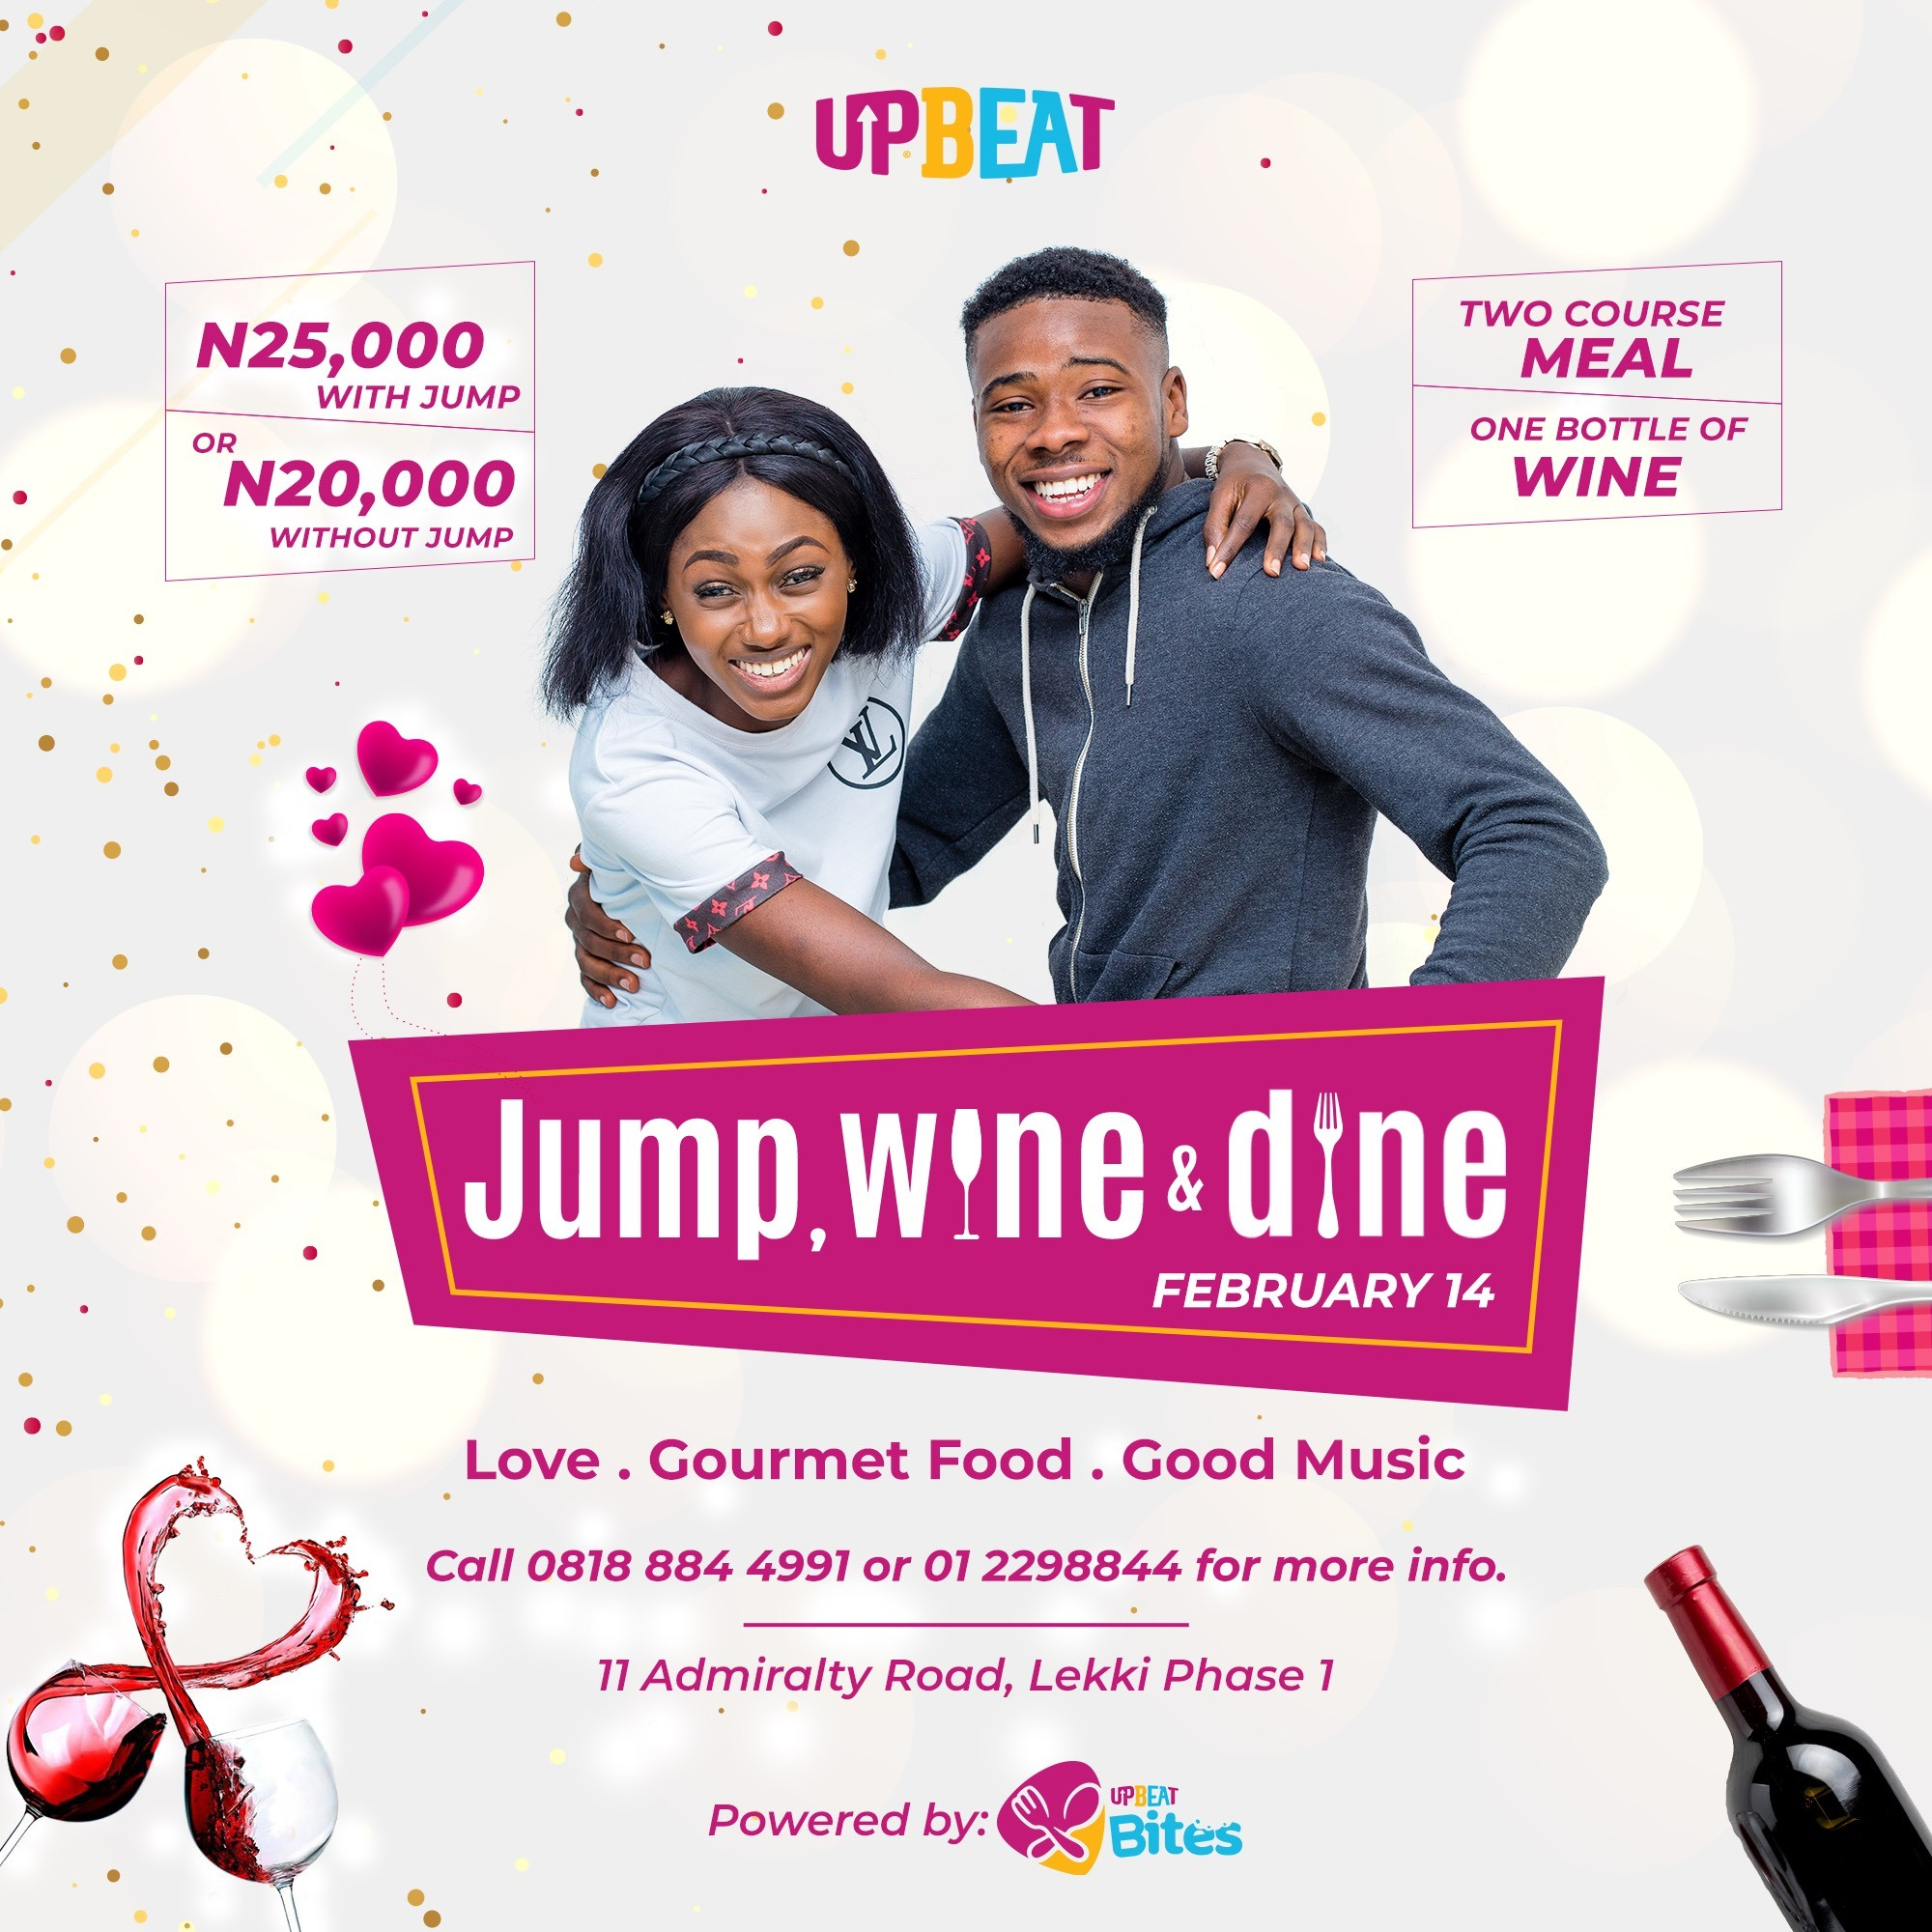 Upbeat Centre to Serenade Lovers With The Jump, Wine & Dine Promo This Valentine - Brand Spur